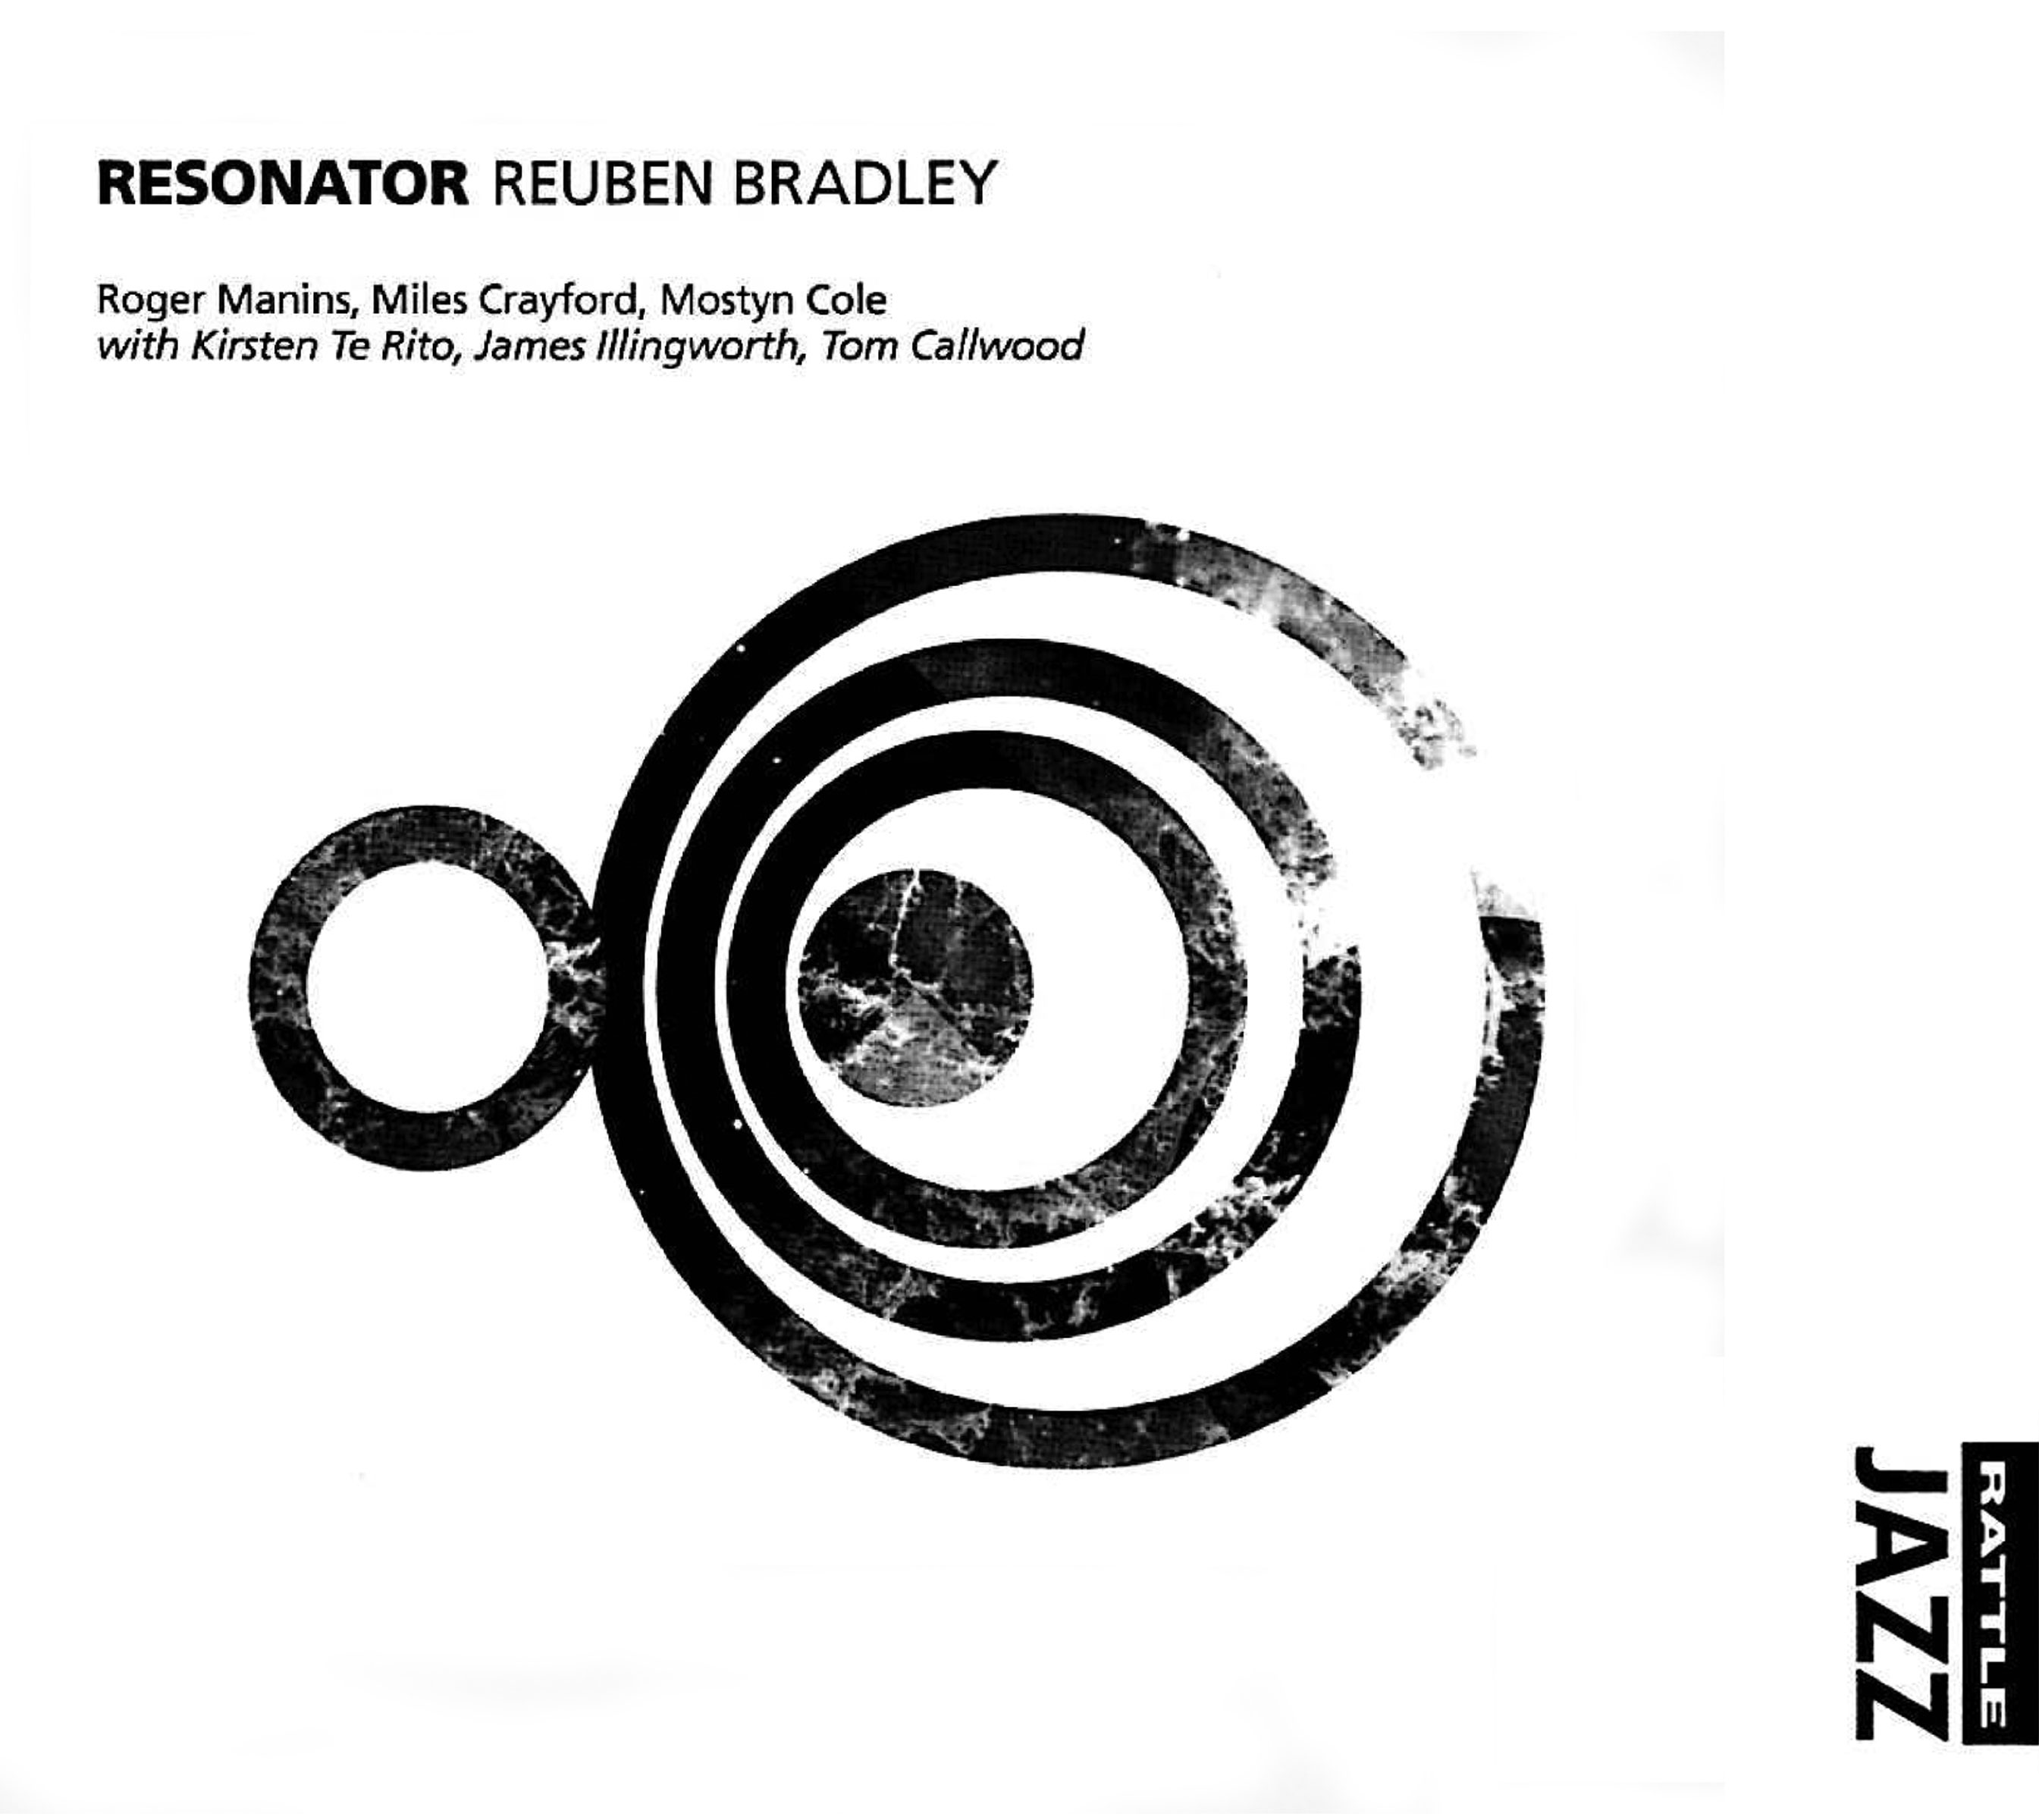 Reuben Bradley | Resonator - downloadable MP3 ALBUM